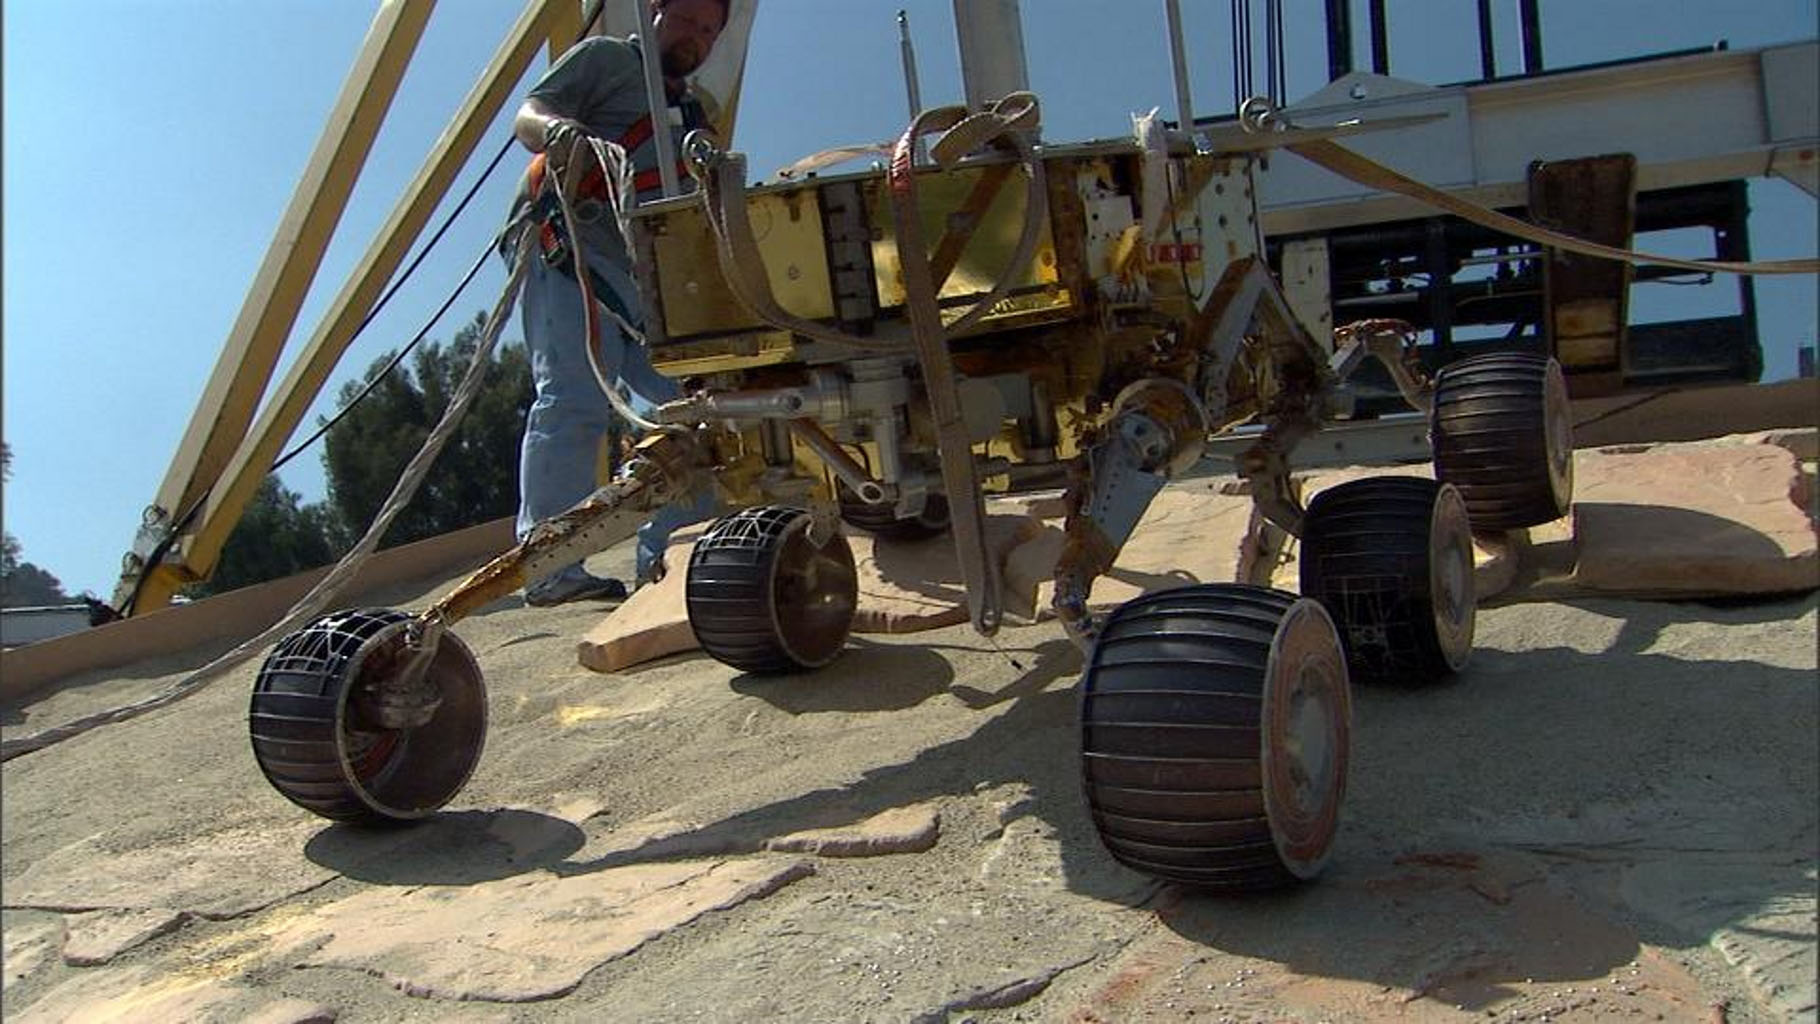 This image taken at NASA's Jet Propulsion Laboratory shows a rover test drive up a manmade slope.